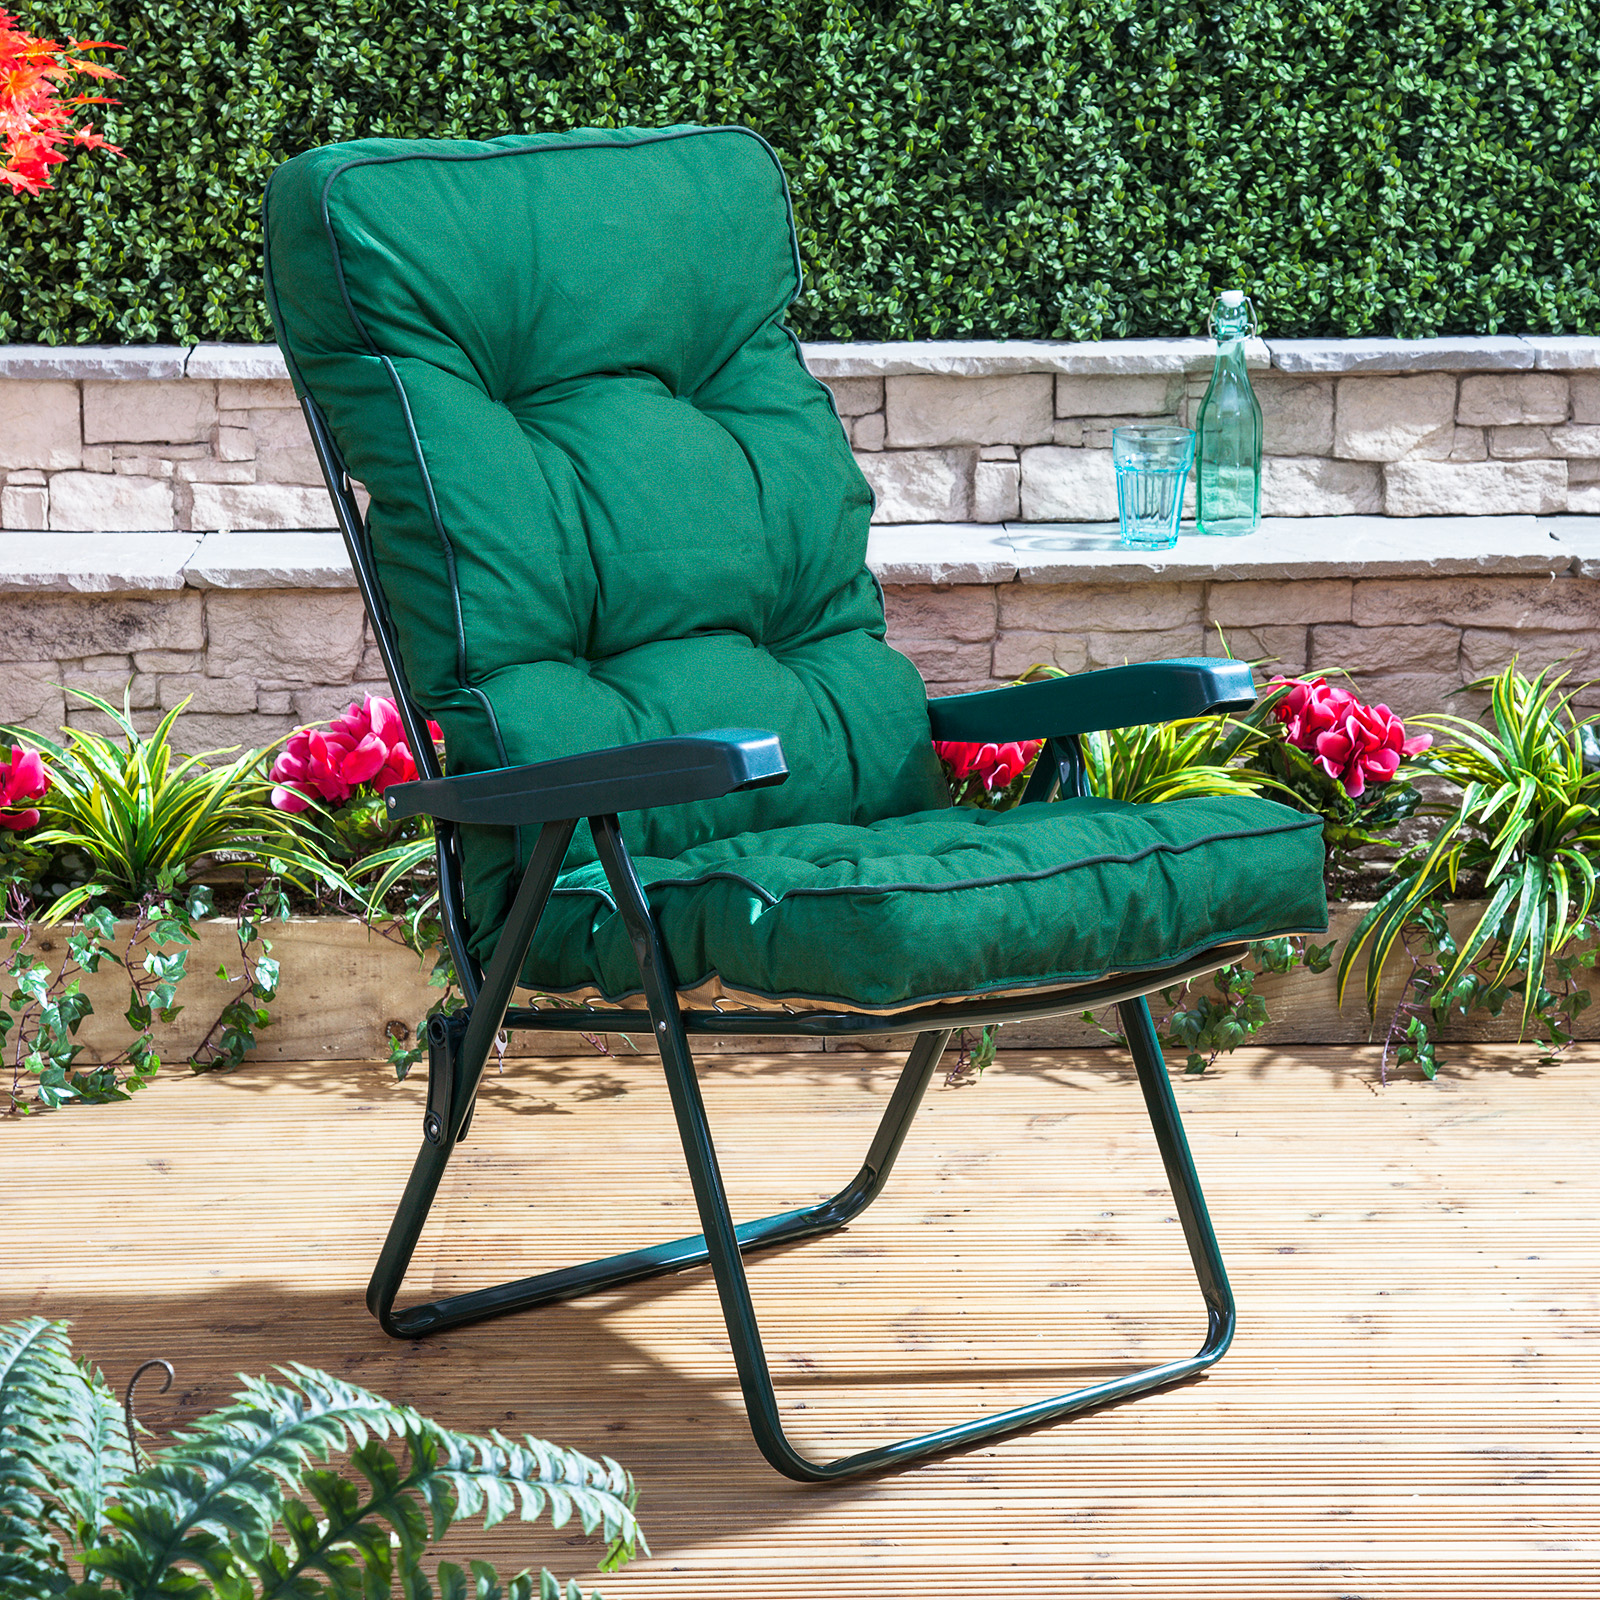 Outdoor Recliner Chair Alfresia Luxury Garden Recliner Chair Cushion Ebay